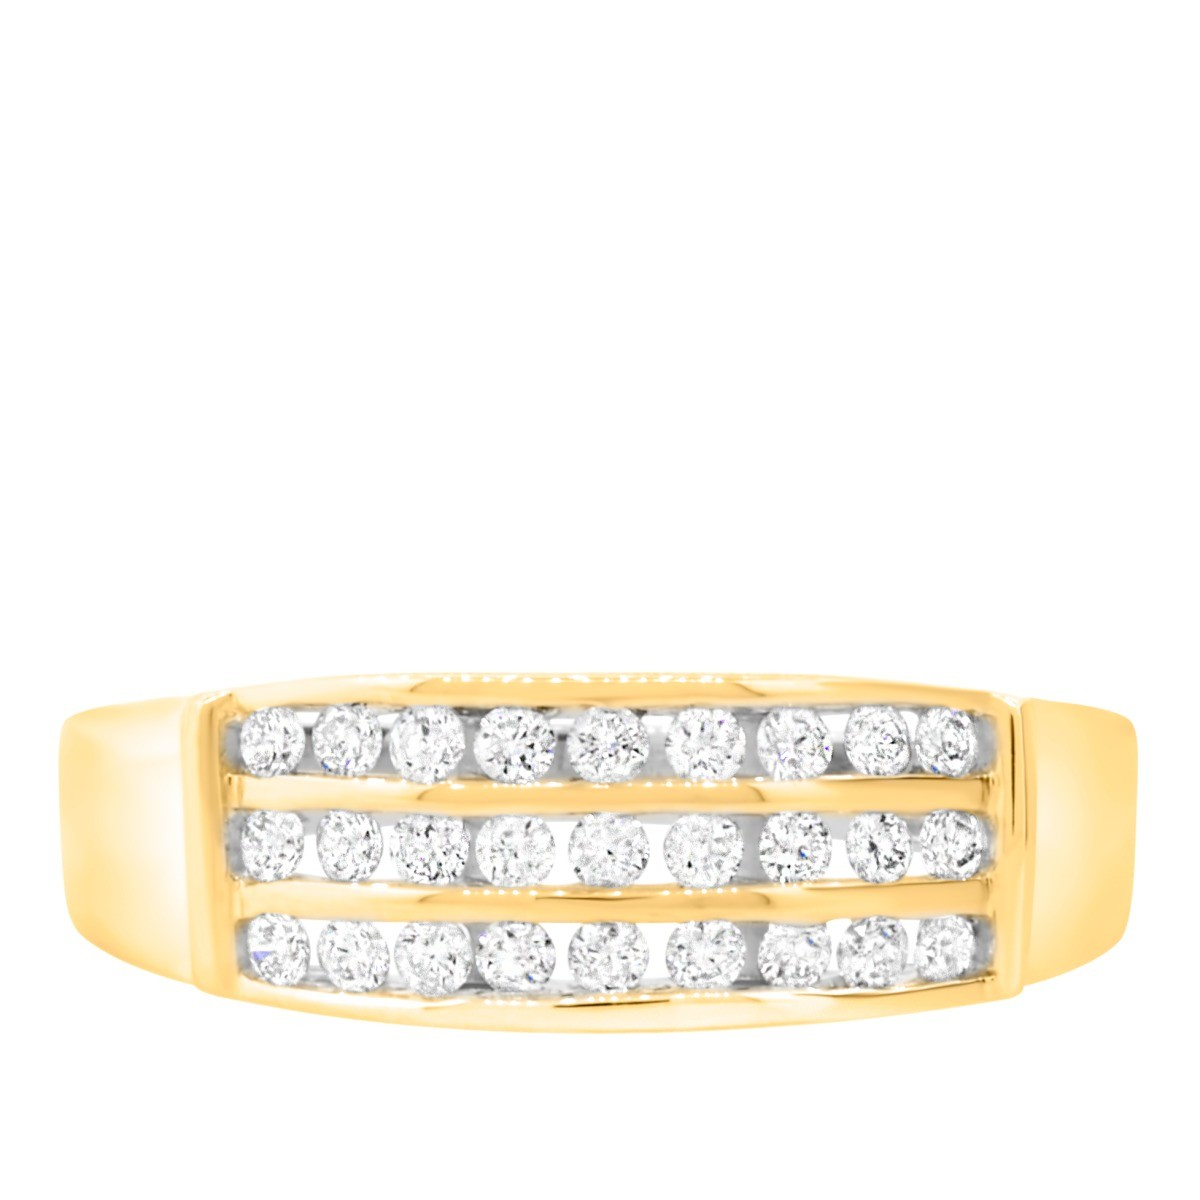 34 Carat TW Diamond Mens Wedding Band 14K Yellow Gold